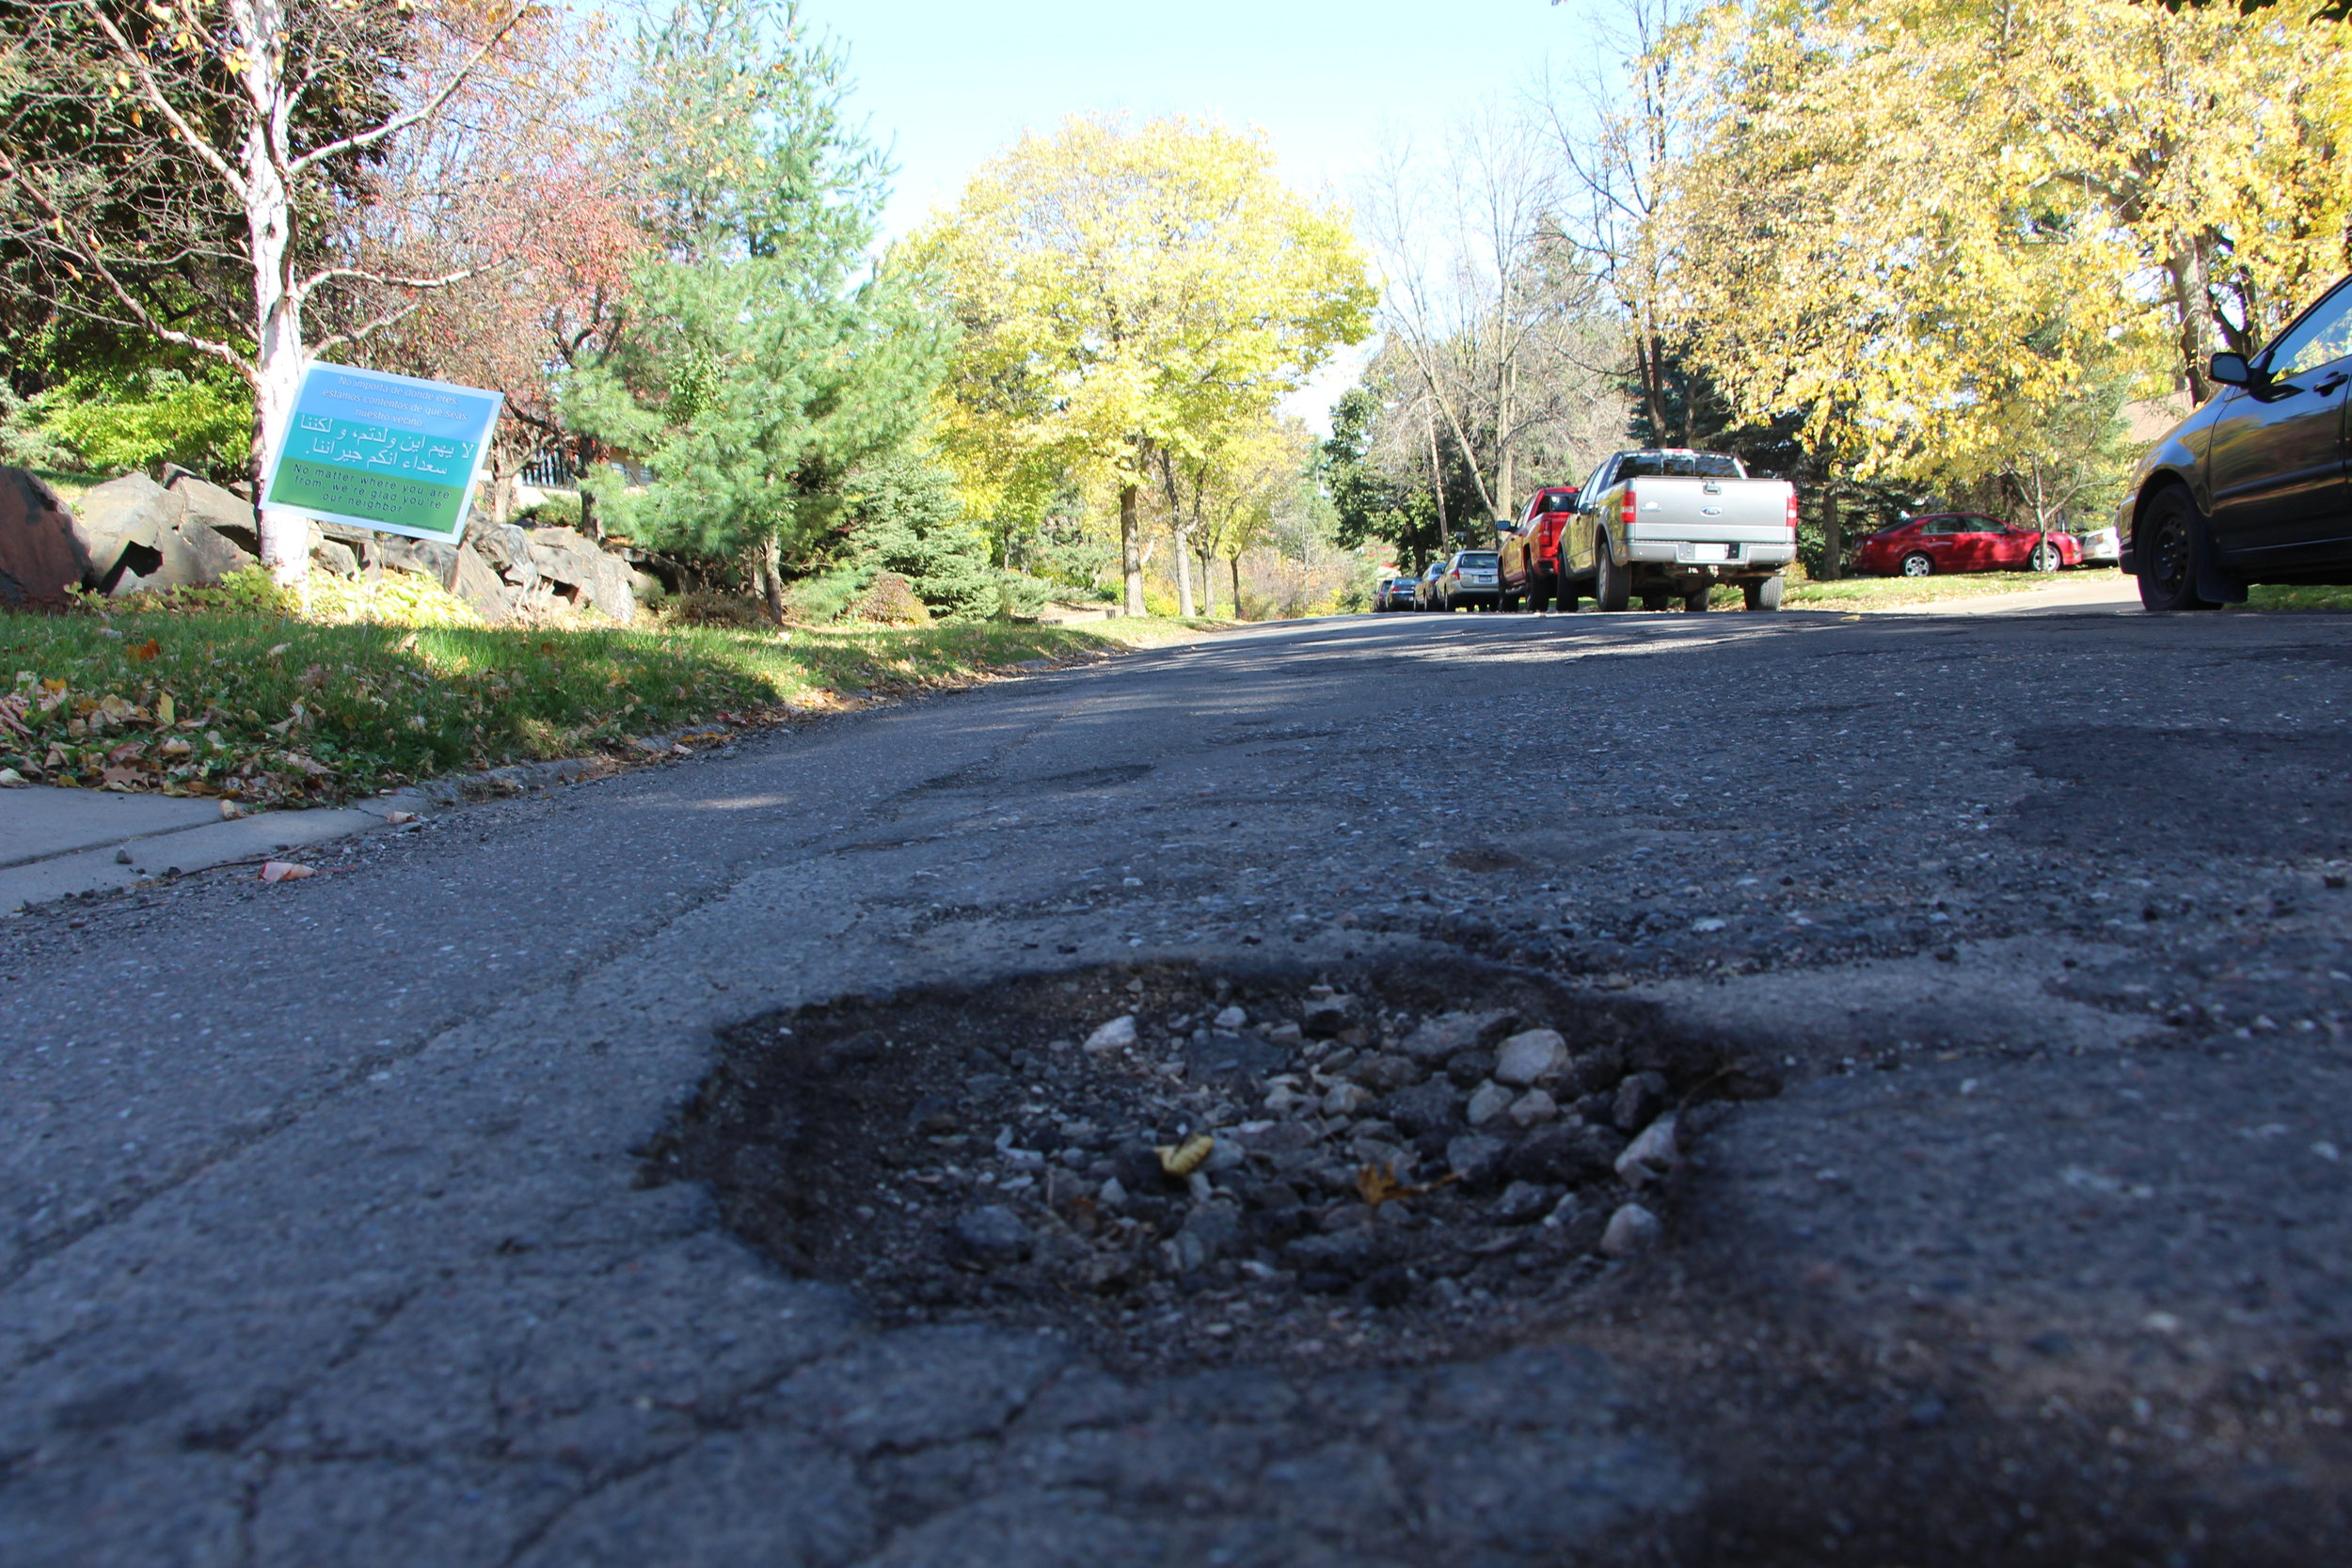 A pothole lurks, waiting to inflict damage on a vehicle's suspension